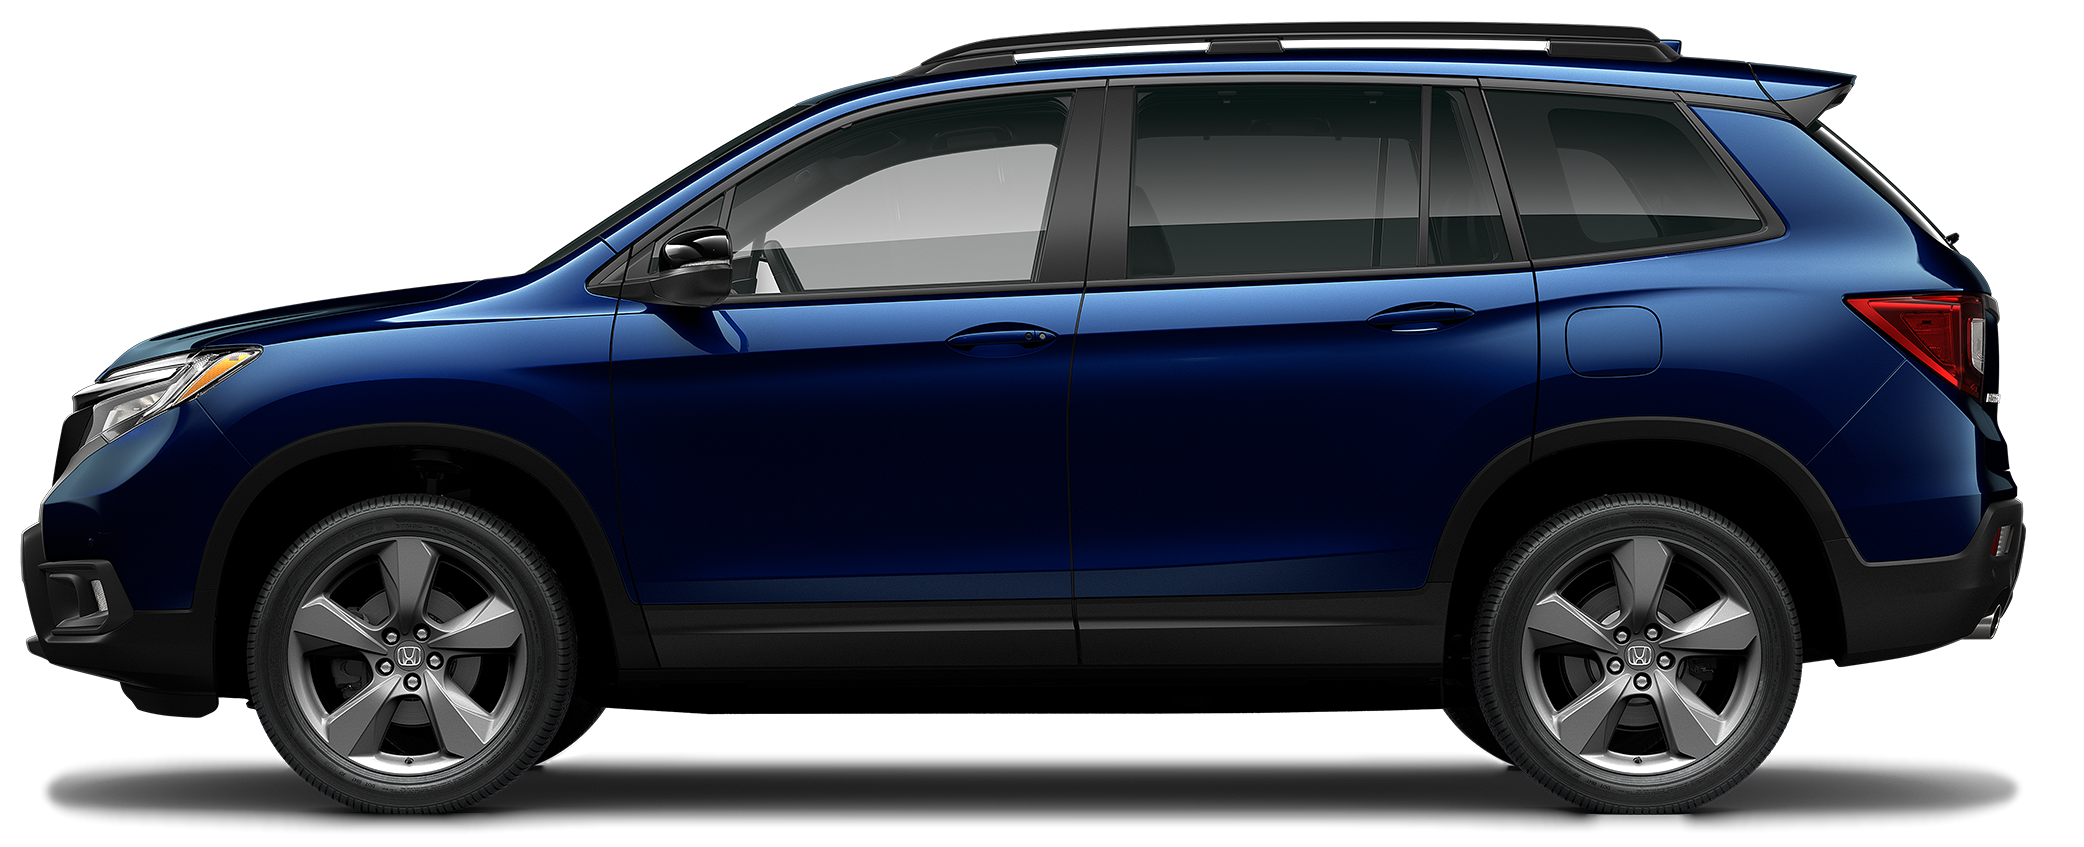 2021 Honda Passport SUV Touring